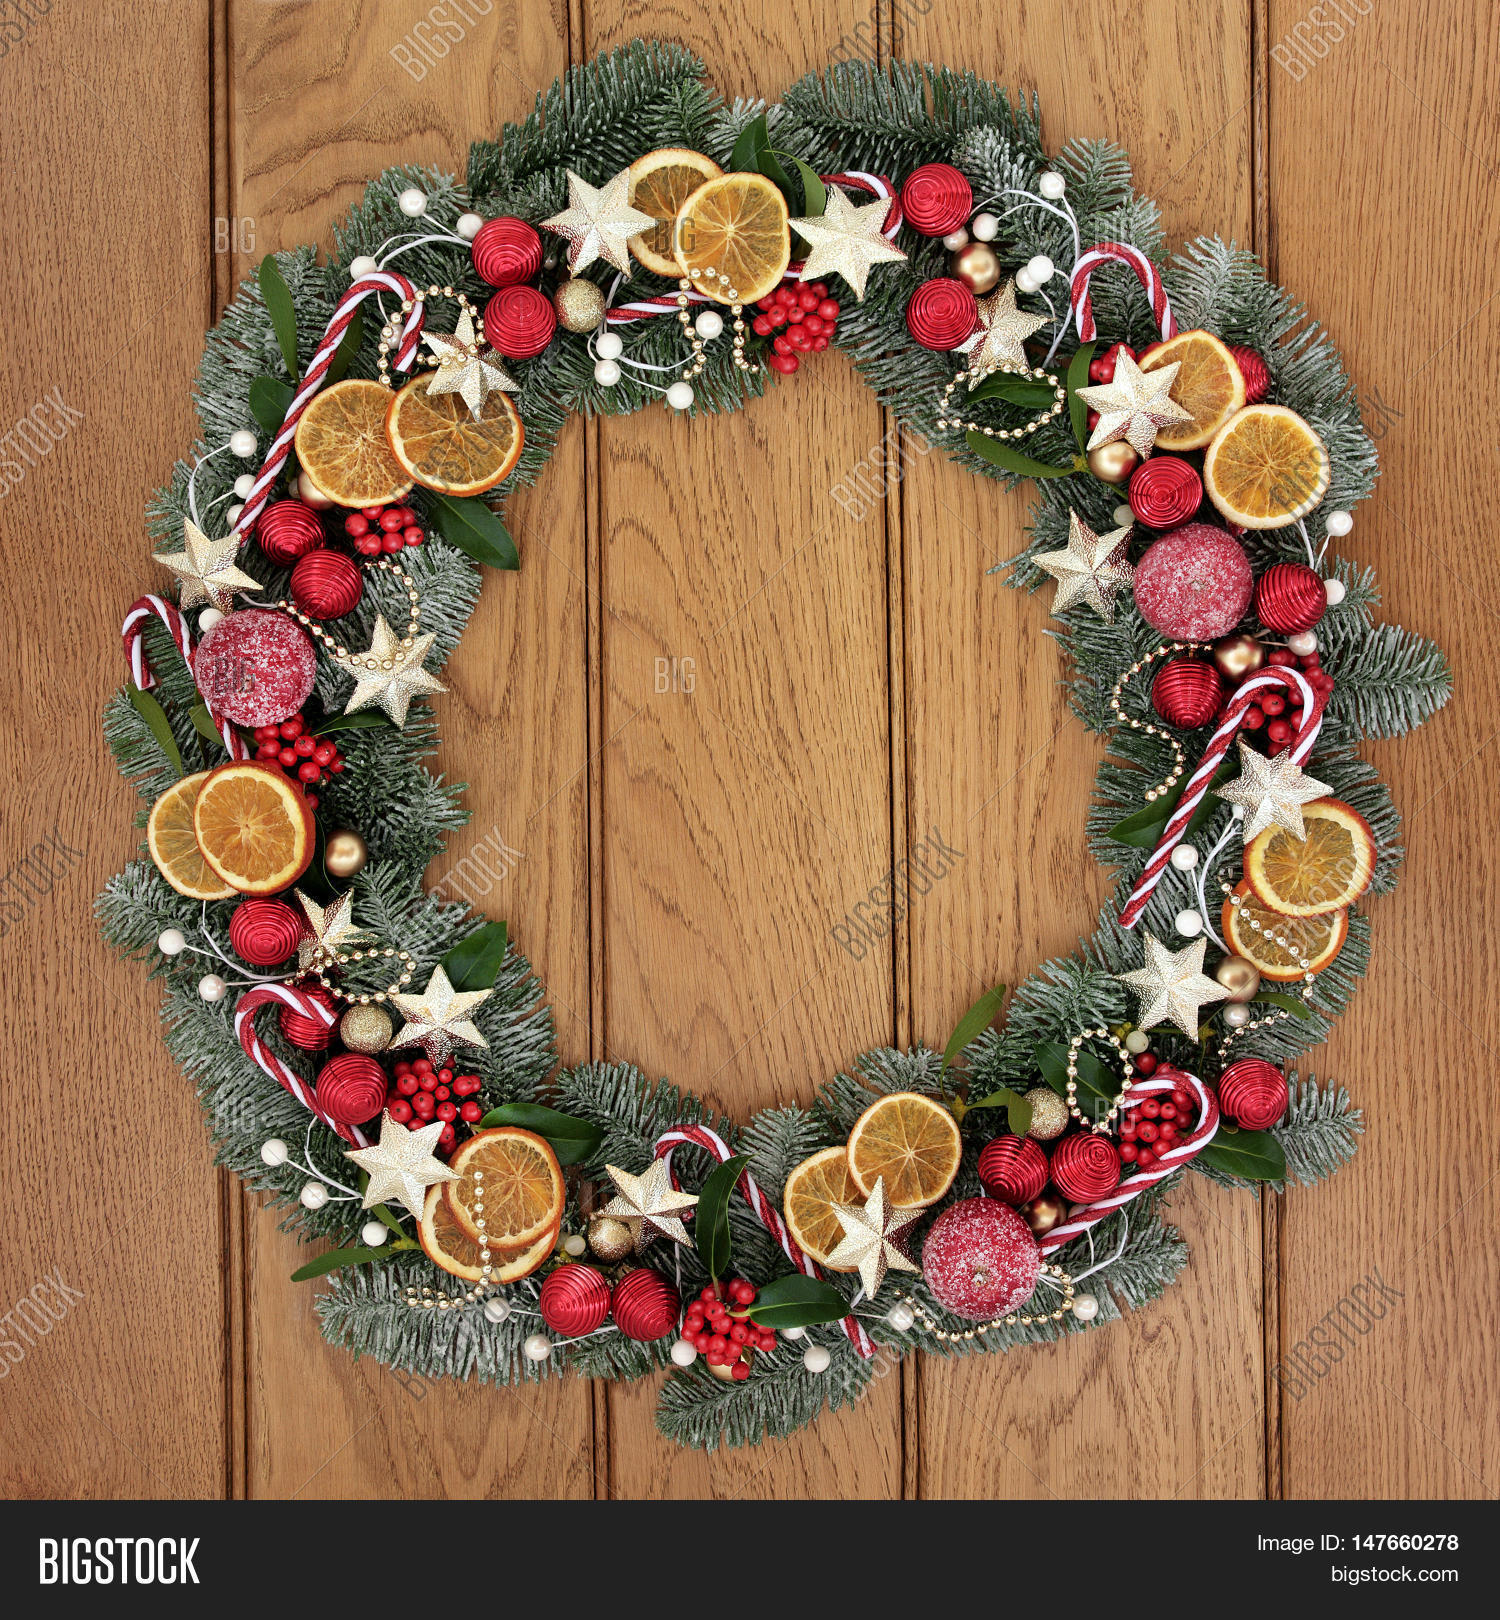 Fruit over the door christmas decoration - Christmas Wreath With Dried Fruit Candy Canes Gold Star And Red Baubles Holly